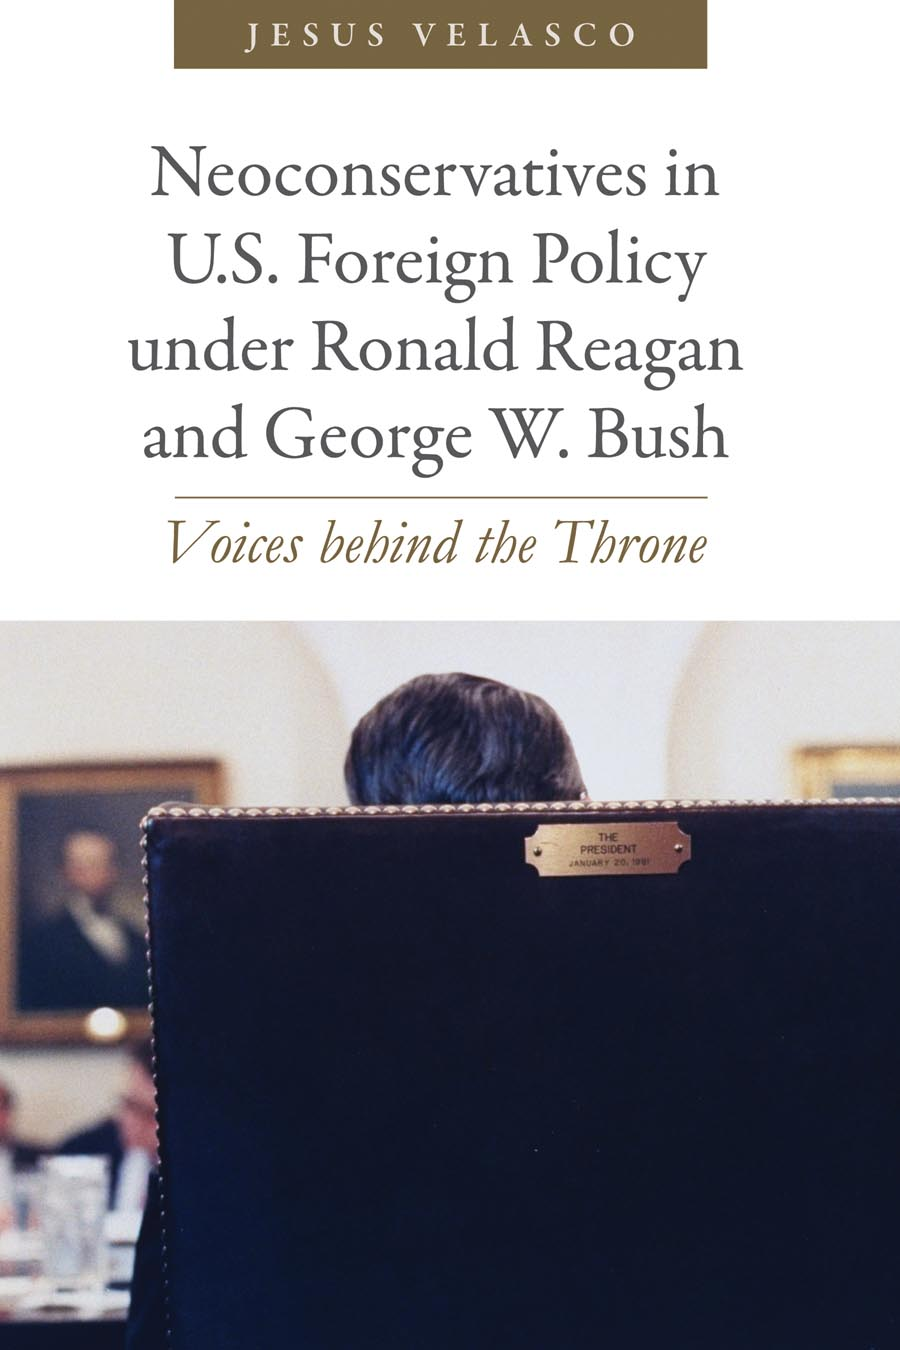 Neoconservatives in U.S. Foreign Policy under Ronald Reagan and George W. Bush – Voices Behind the Throne a faustian foreign policy from woodrow wilson to george w bush